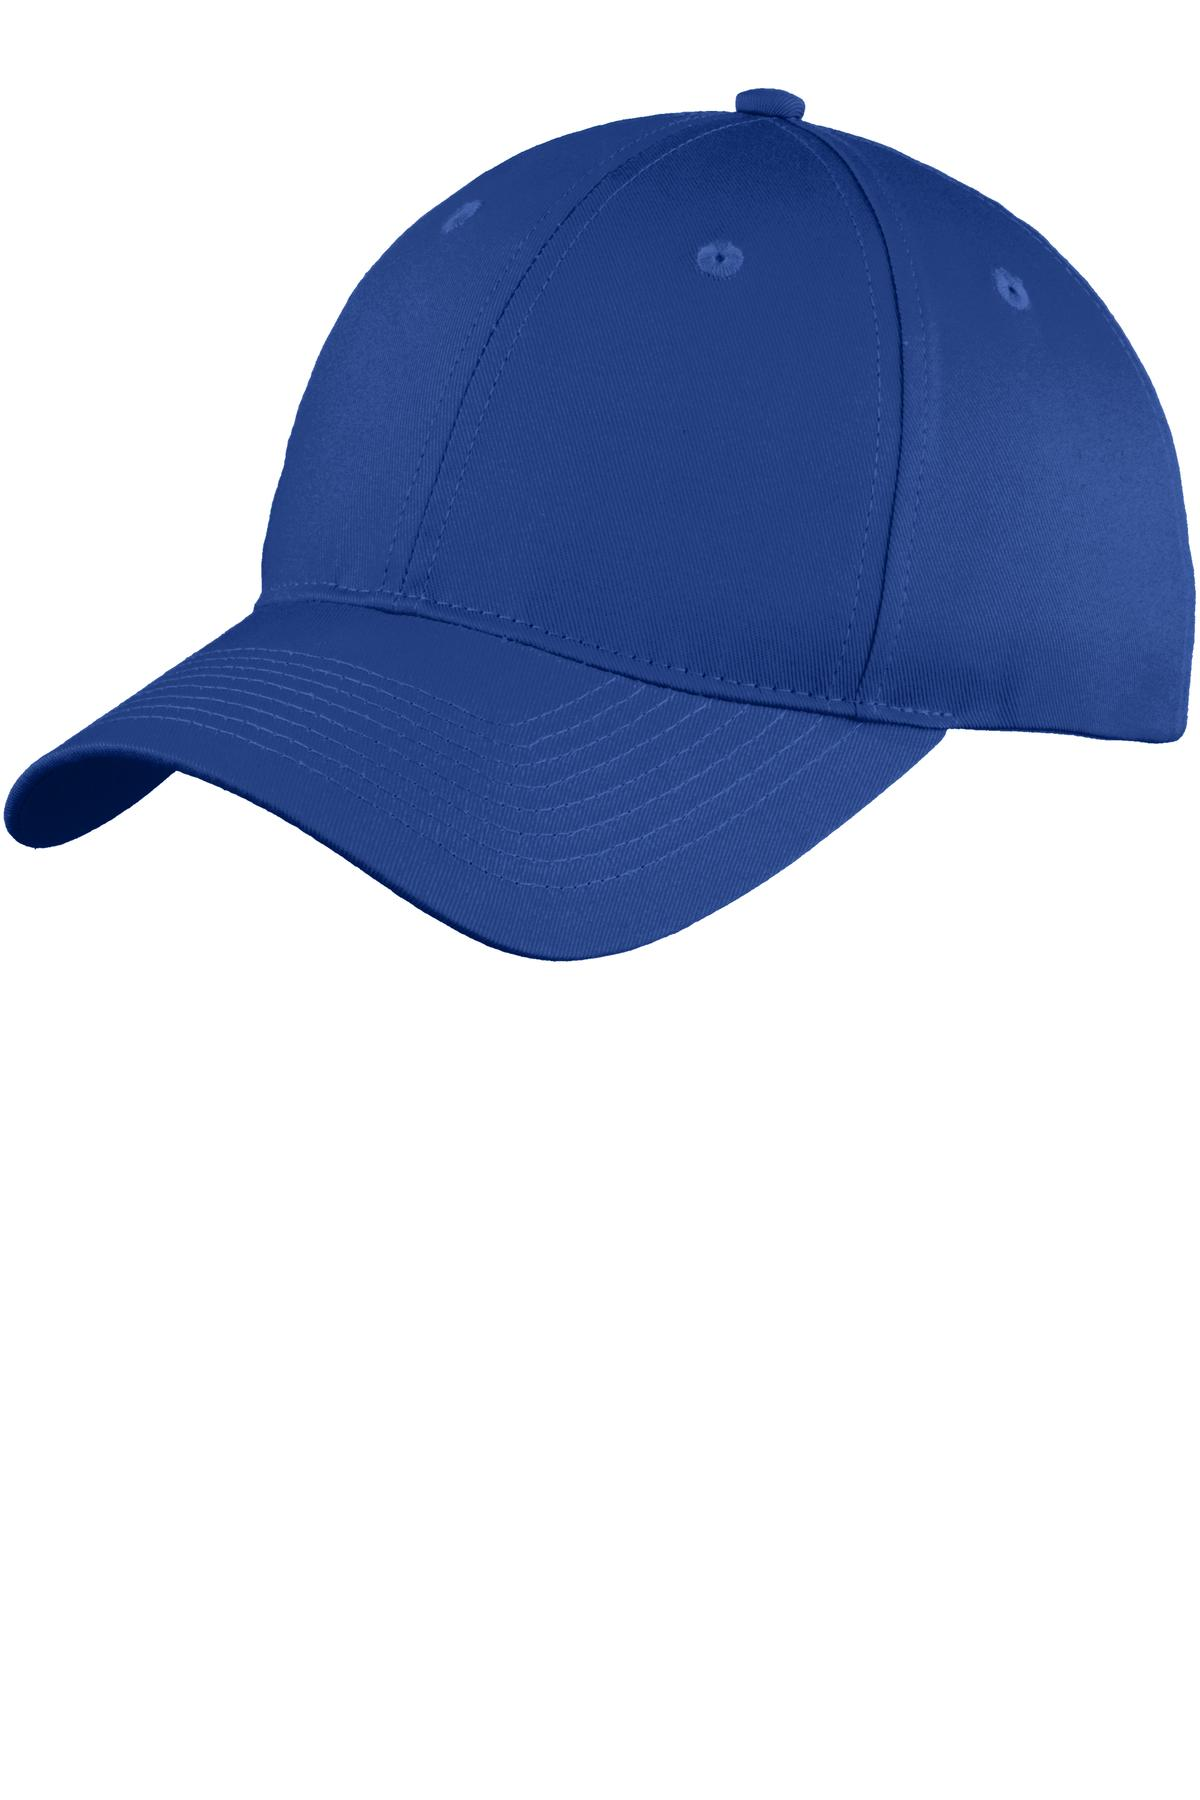 Port & Company ®  Six-Panel Unstructured Twill Cap. C914 - Royal